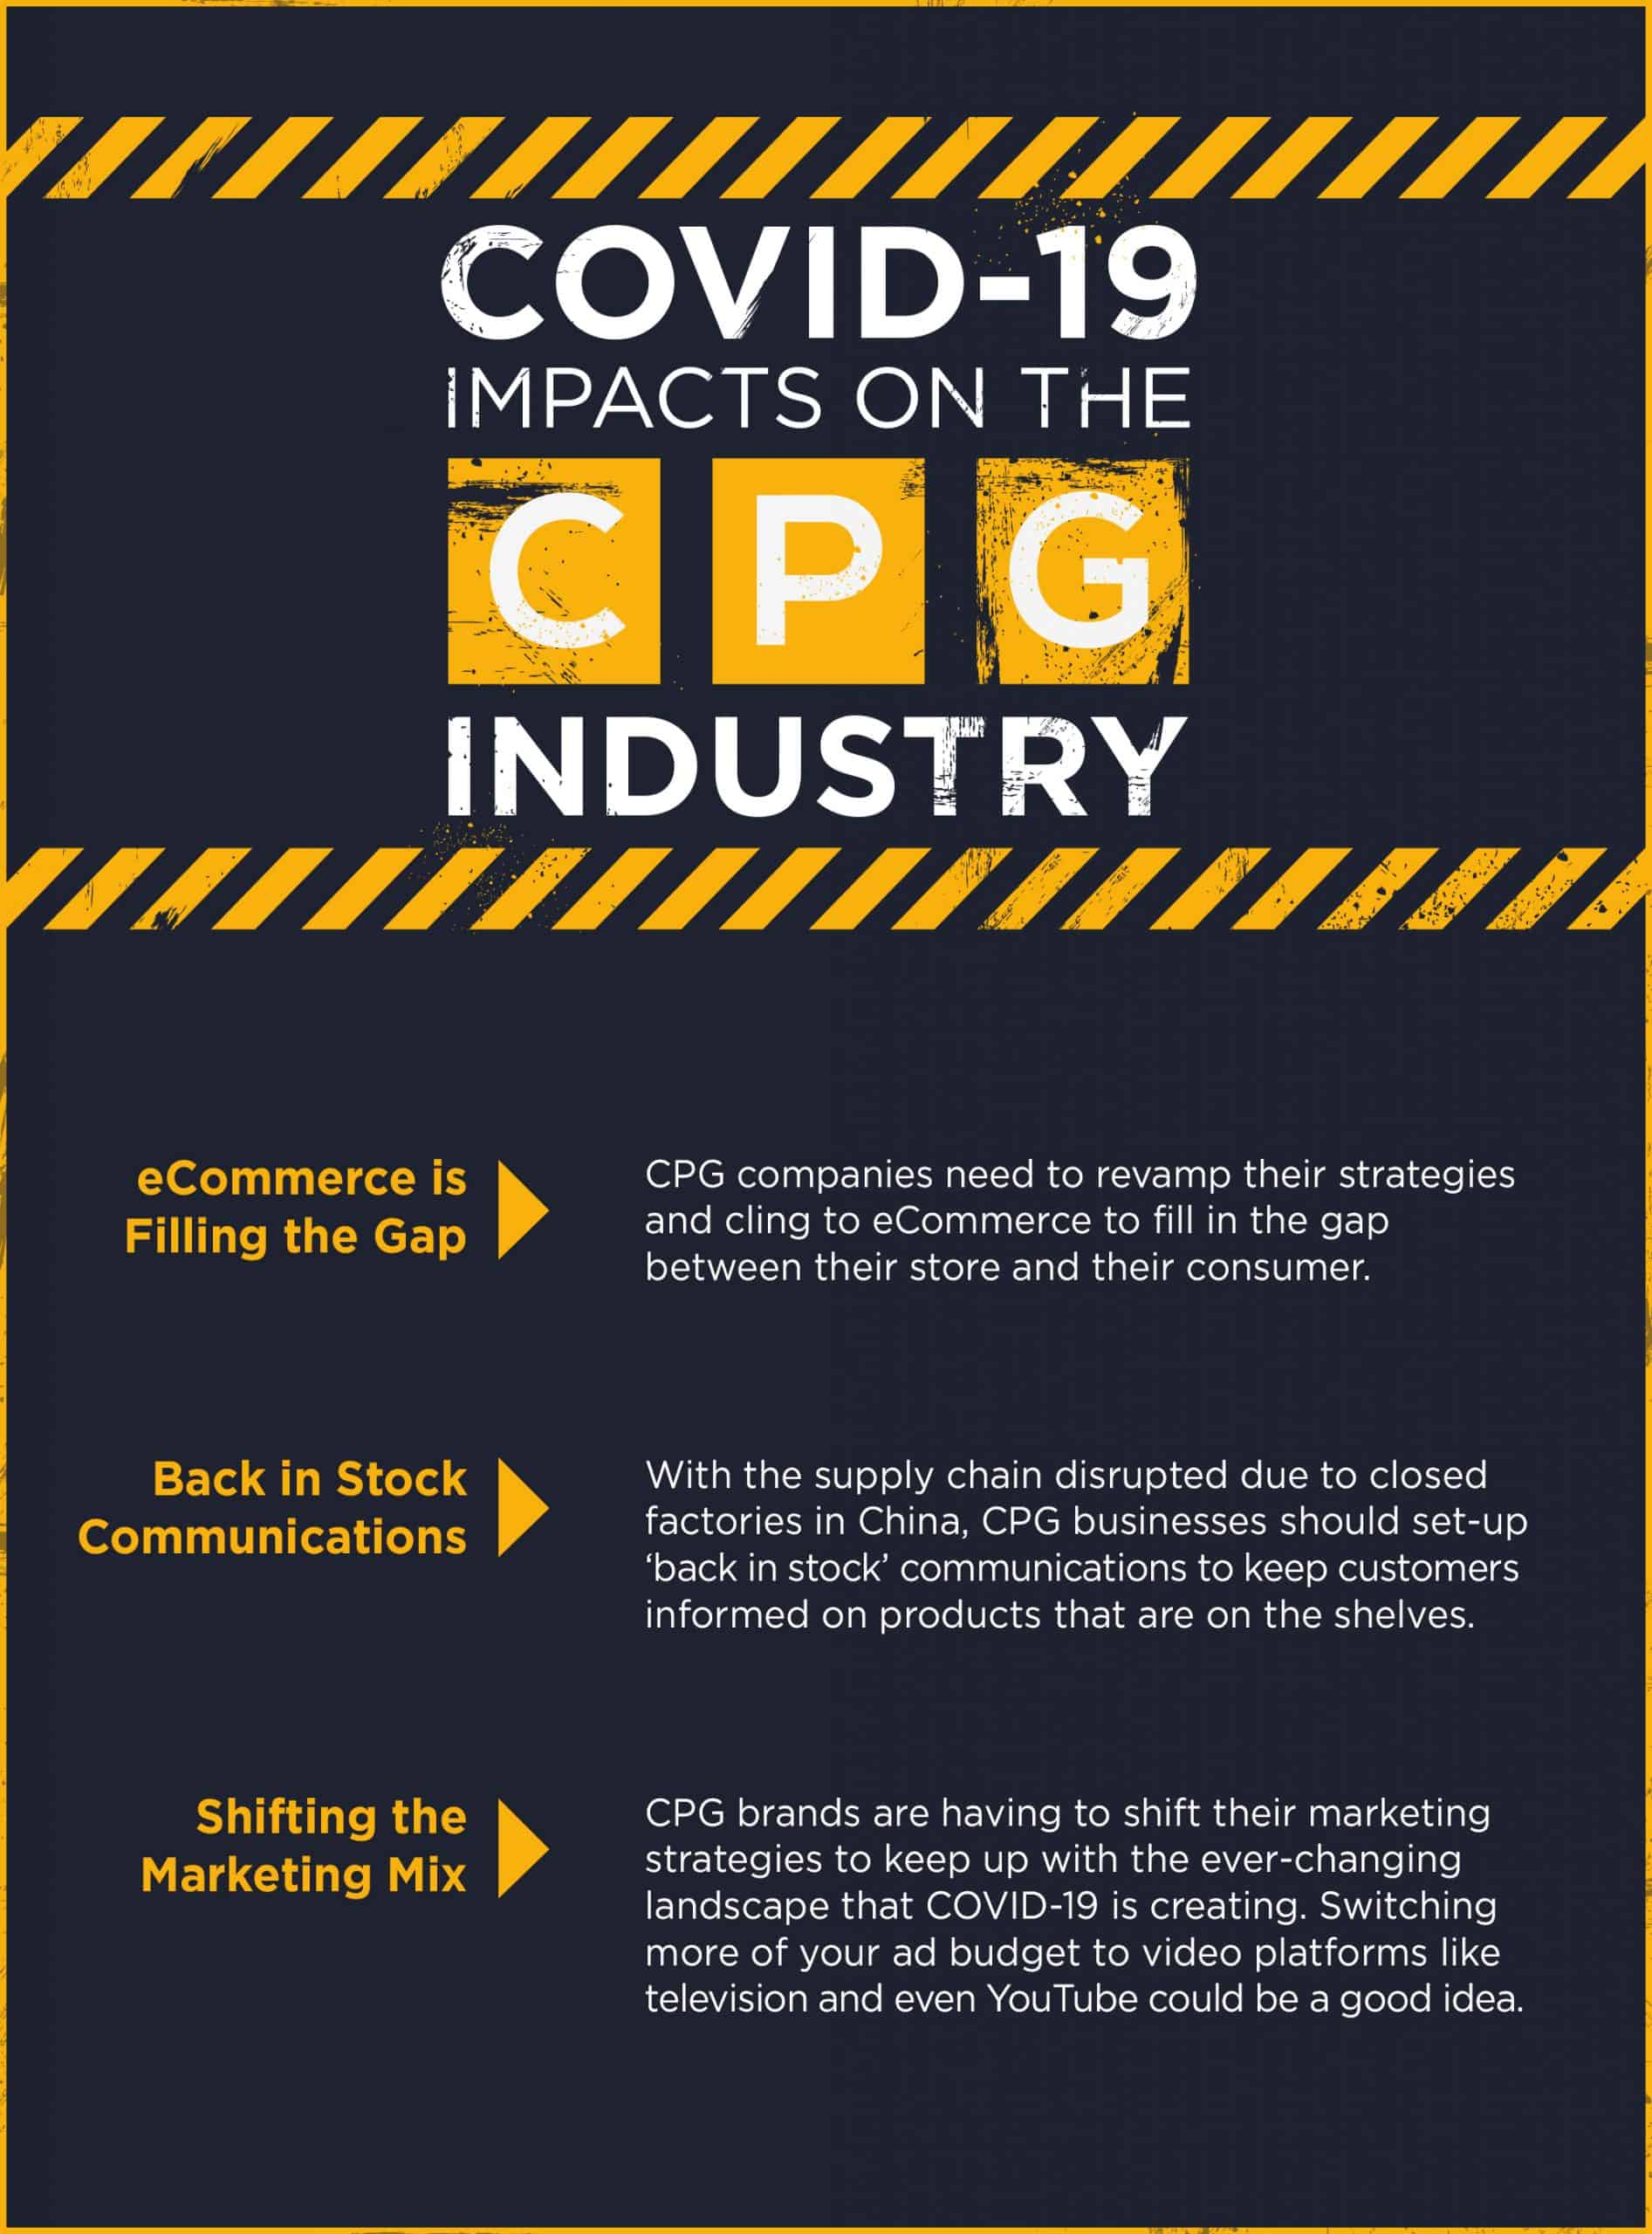 COVID-19 Impacts on the CPG Industry